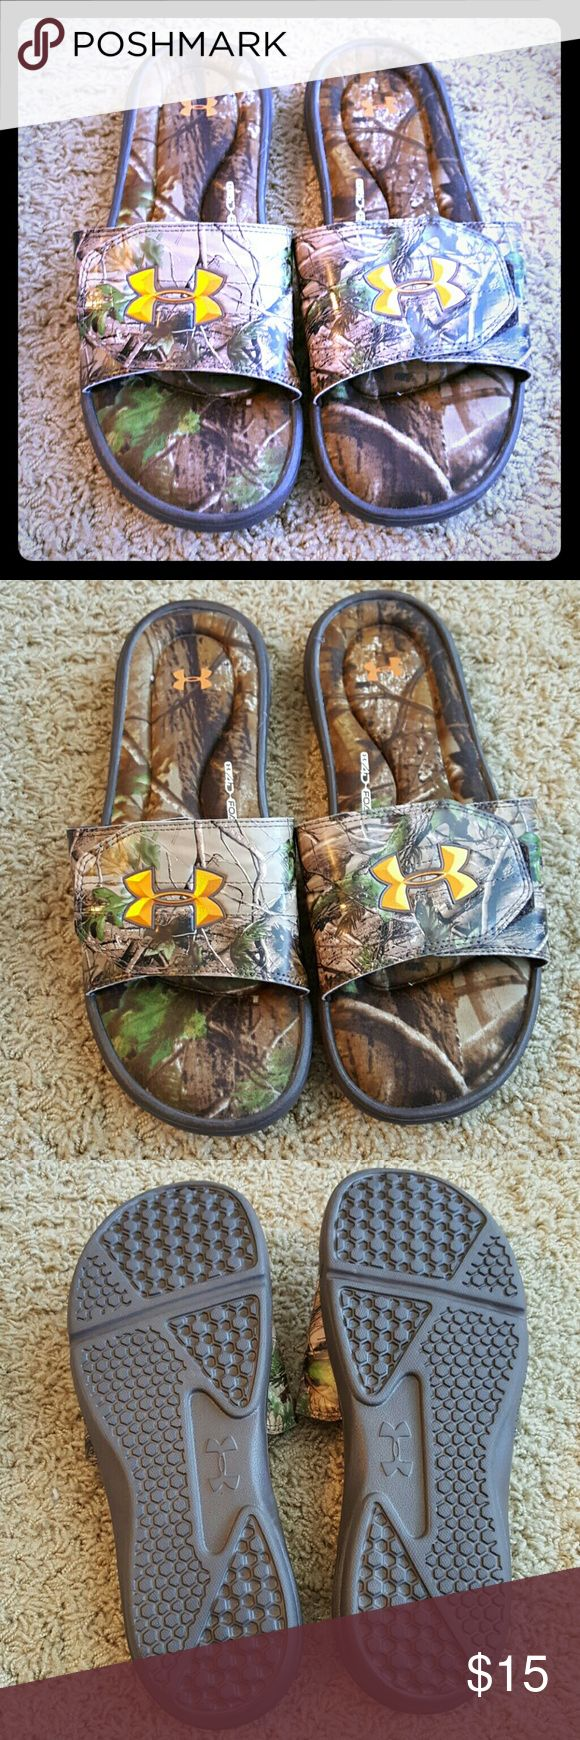 Men's Under Armour Camo Slides EUC size 11. Under Armour Shoes Sandals & Flip-Flops